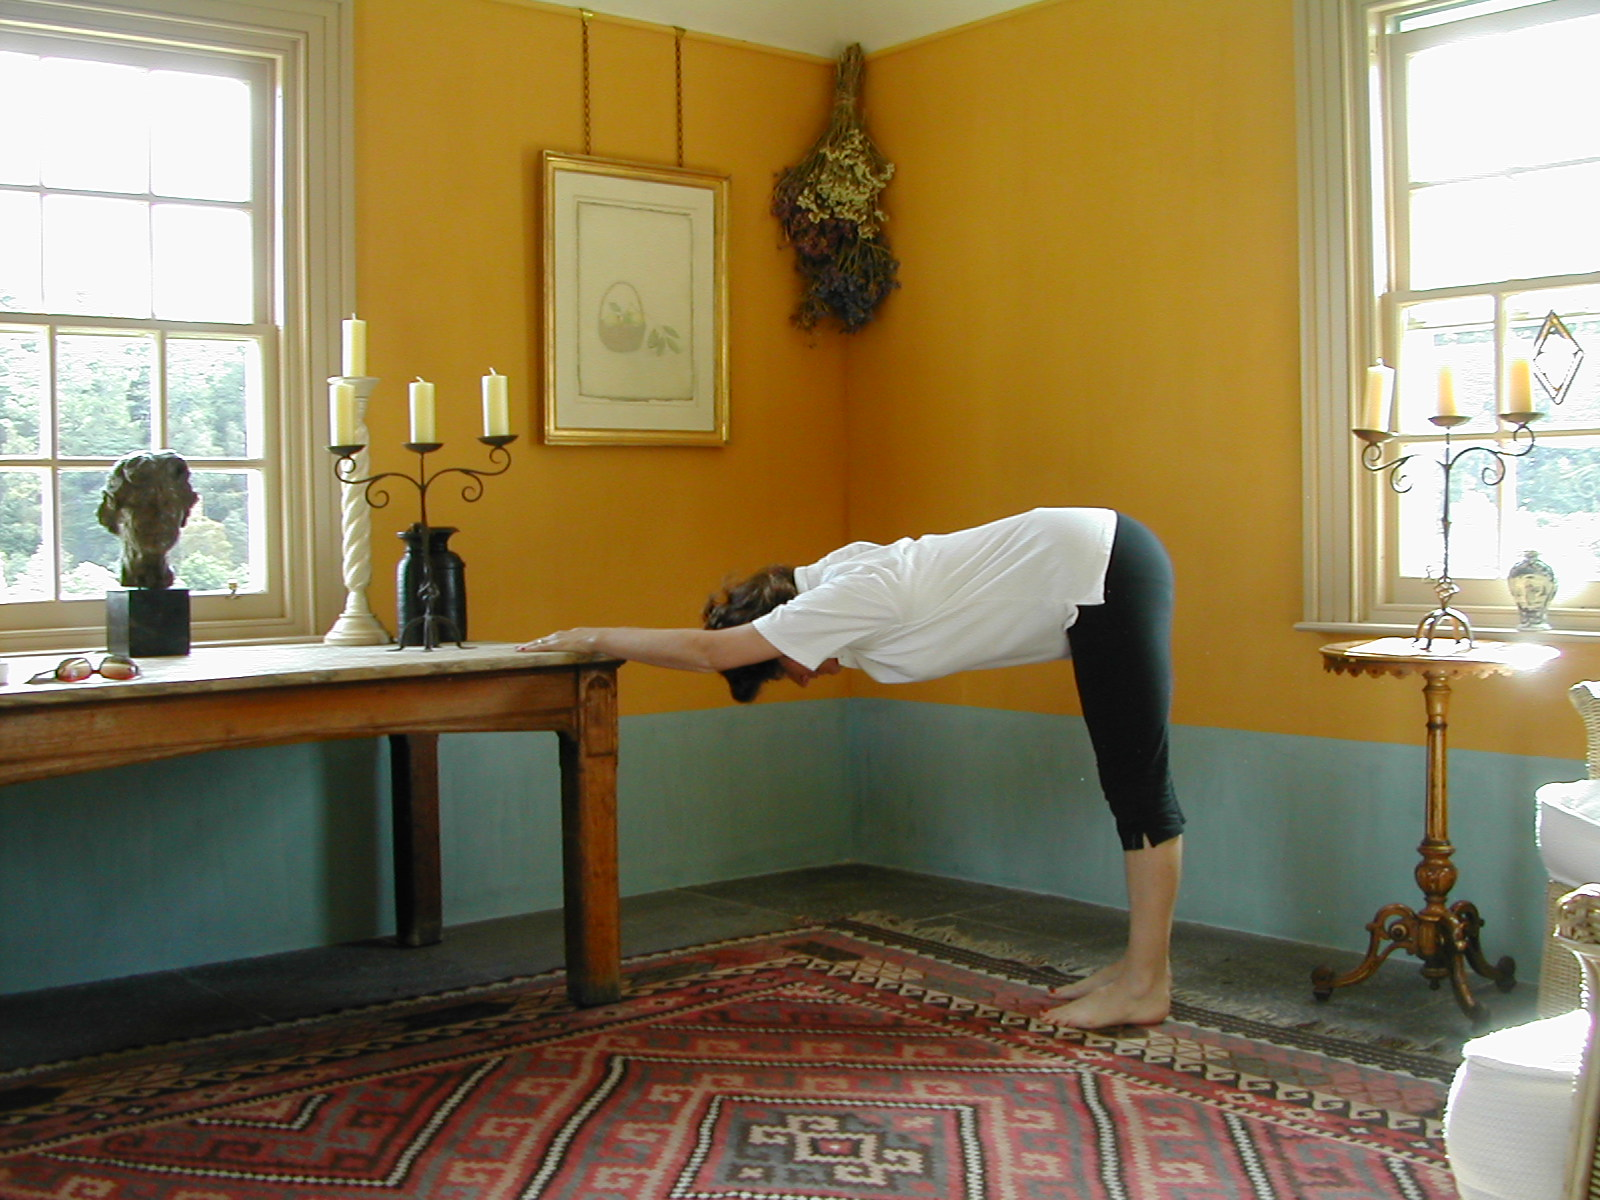 The Table Stretch lengthens the spine and loosens the spinal nerves caught and matted in adhesions